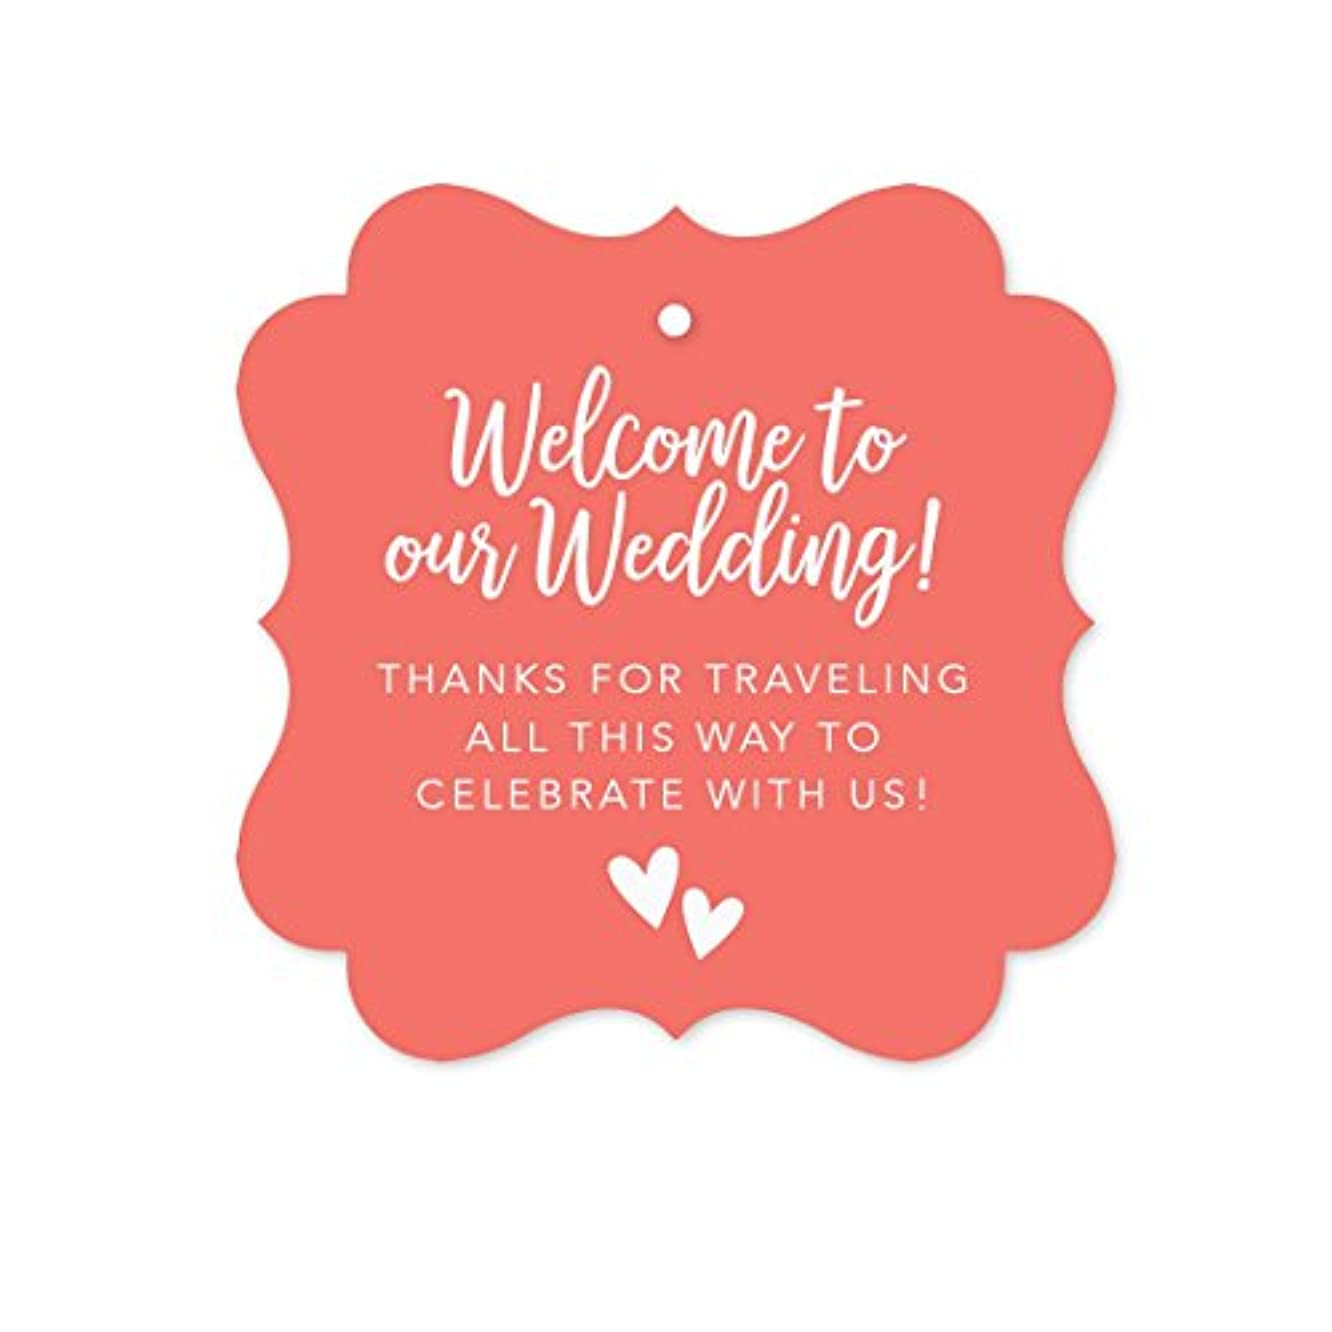 Andaz Press Out of Town Bags Fancy Frame Gift Tags, Welcome to Our Wedding Thanks for Traveling to Celebrate with Us, Coral, 24-Pack, for Destination OOT Gable Boxes